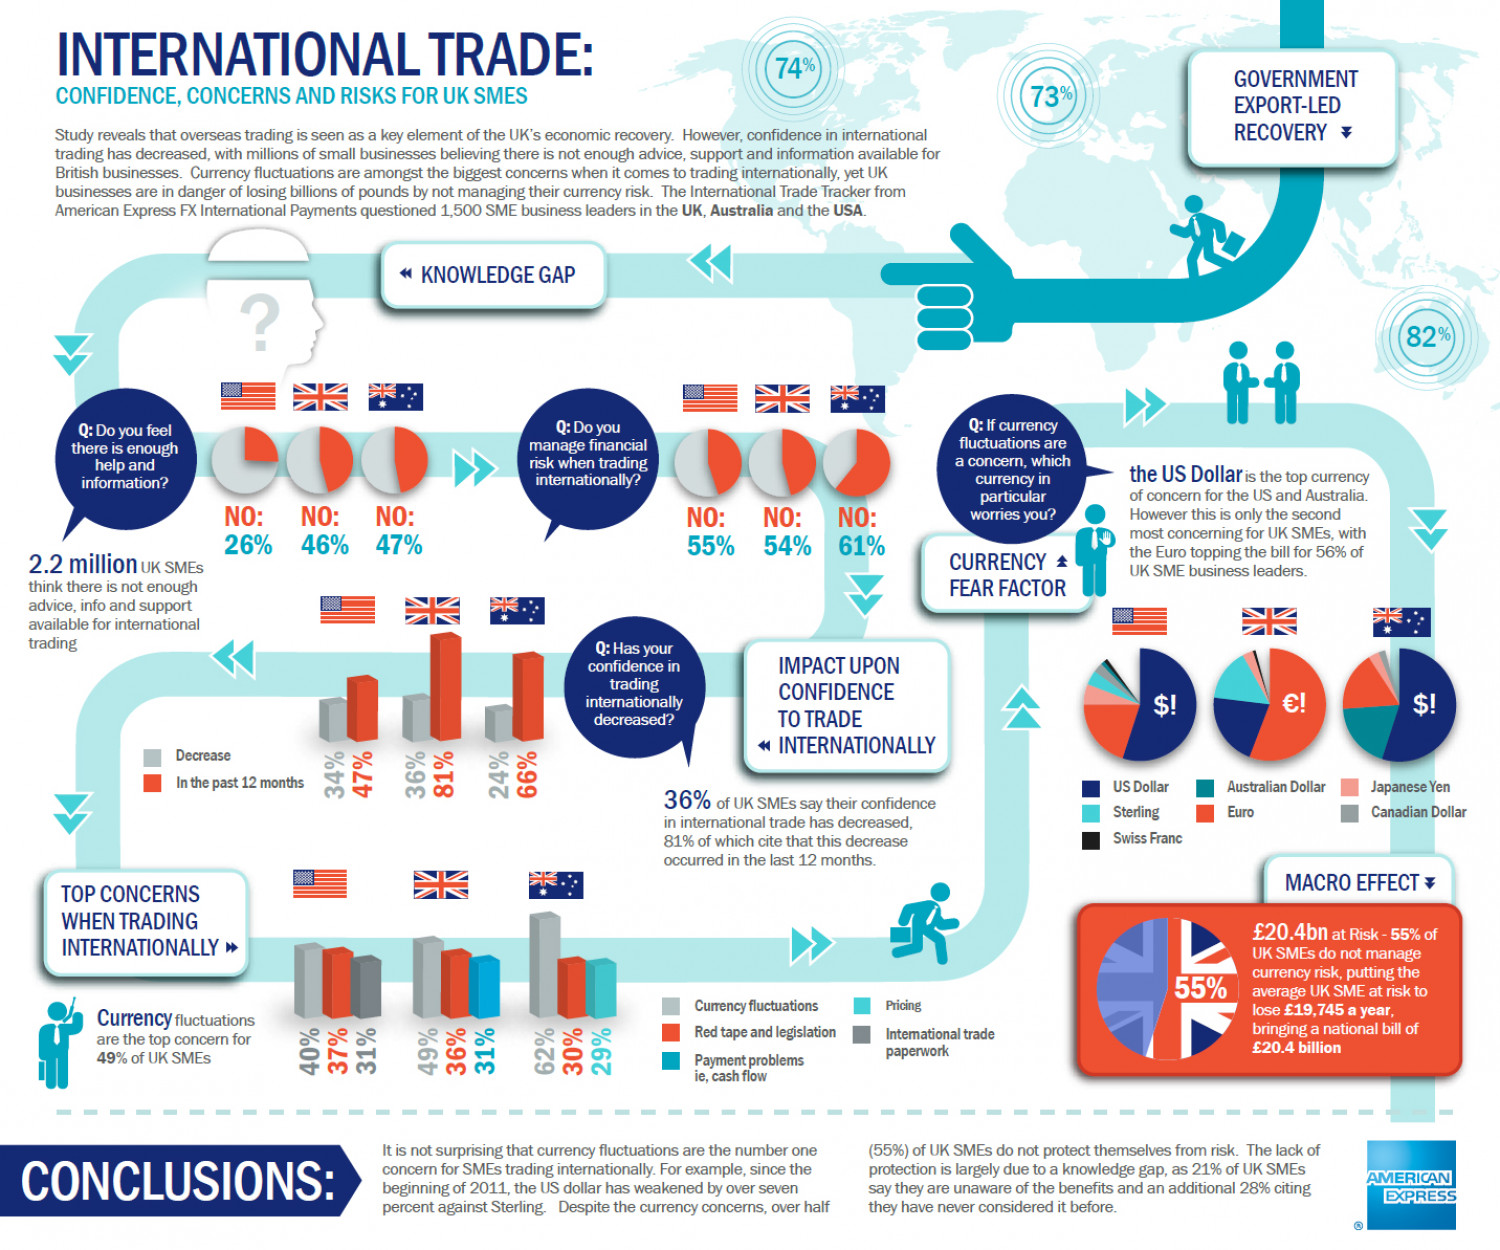 American Express International Trade Condifence | Visual.ly